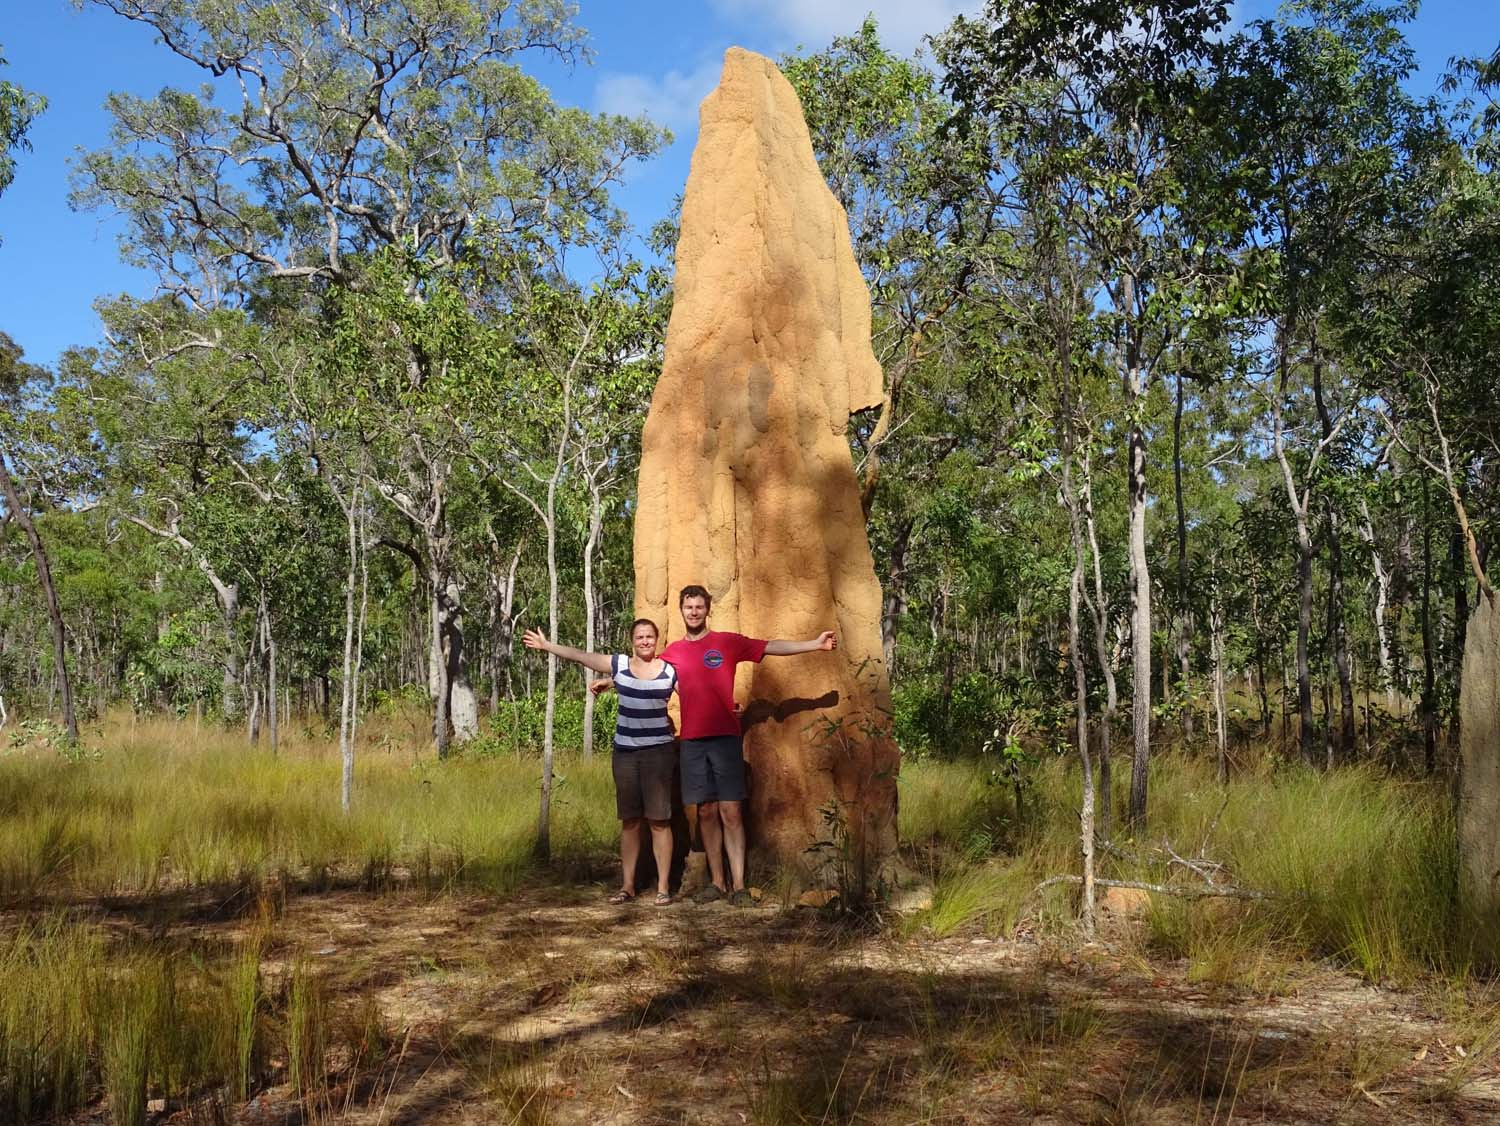 they have some huge termite mounds here